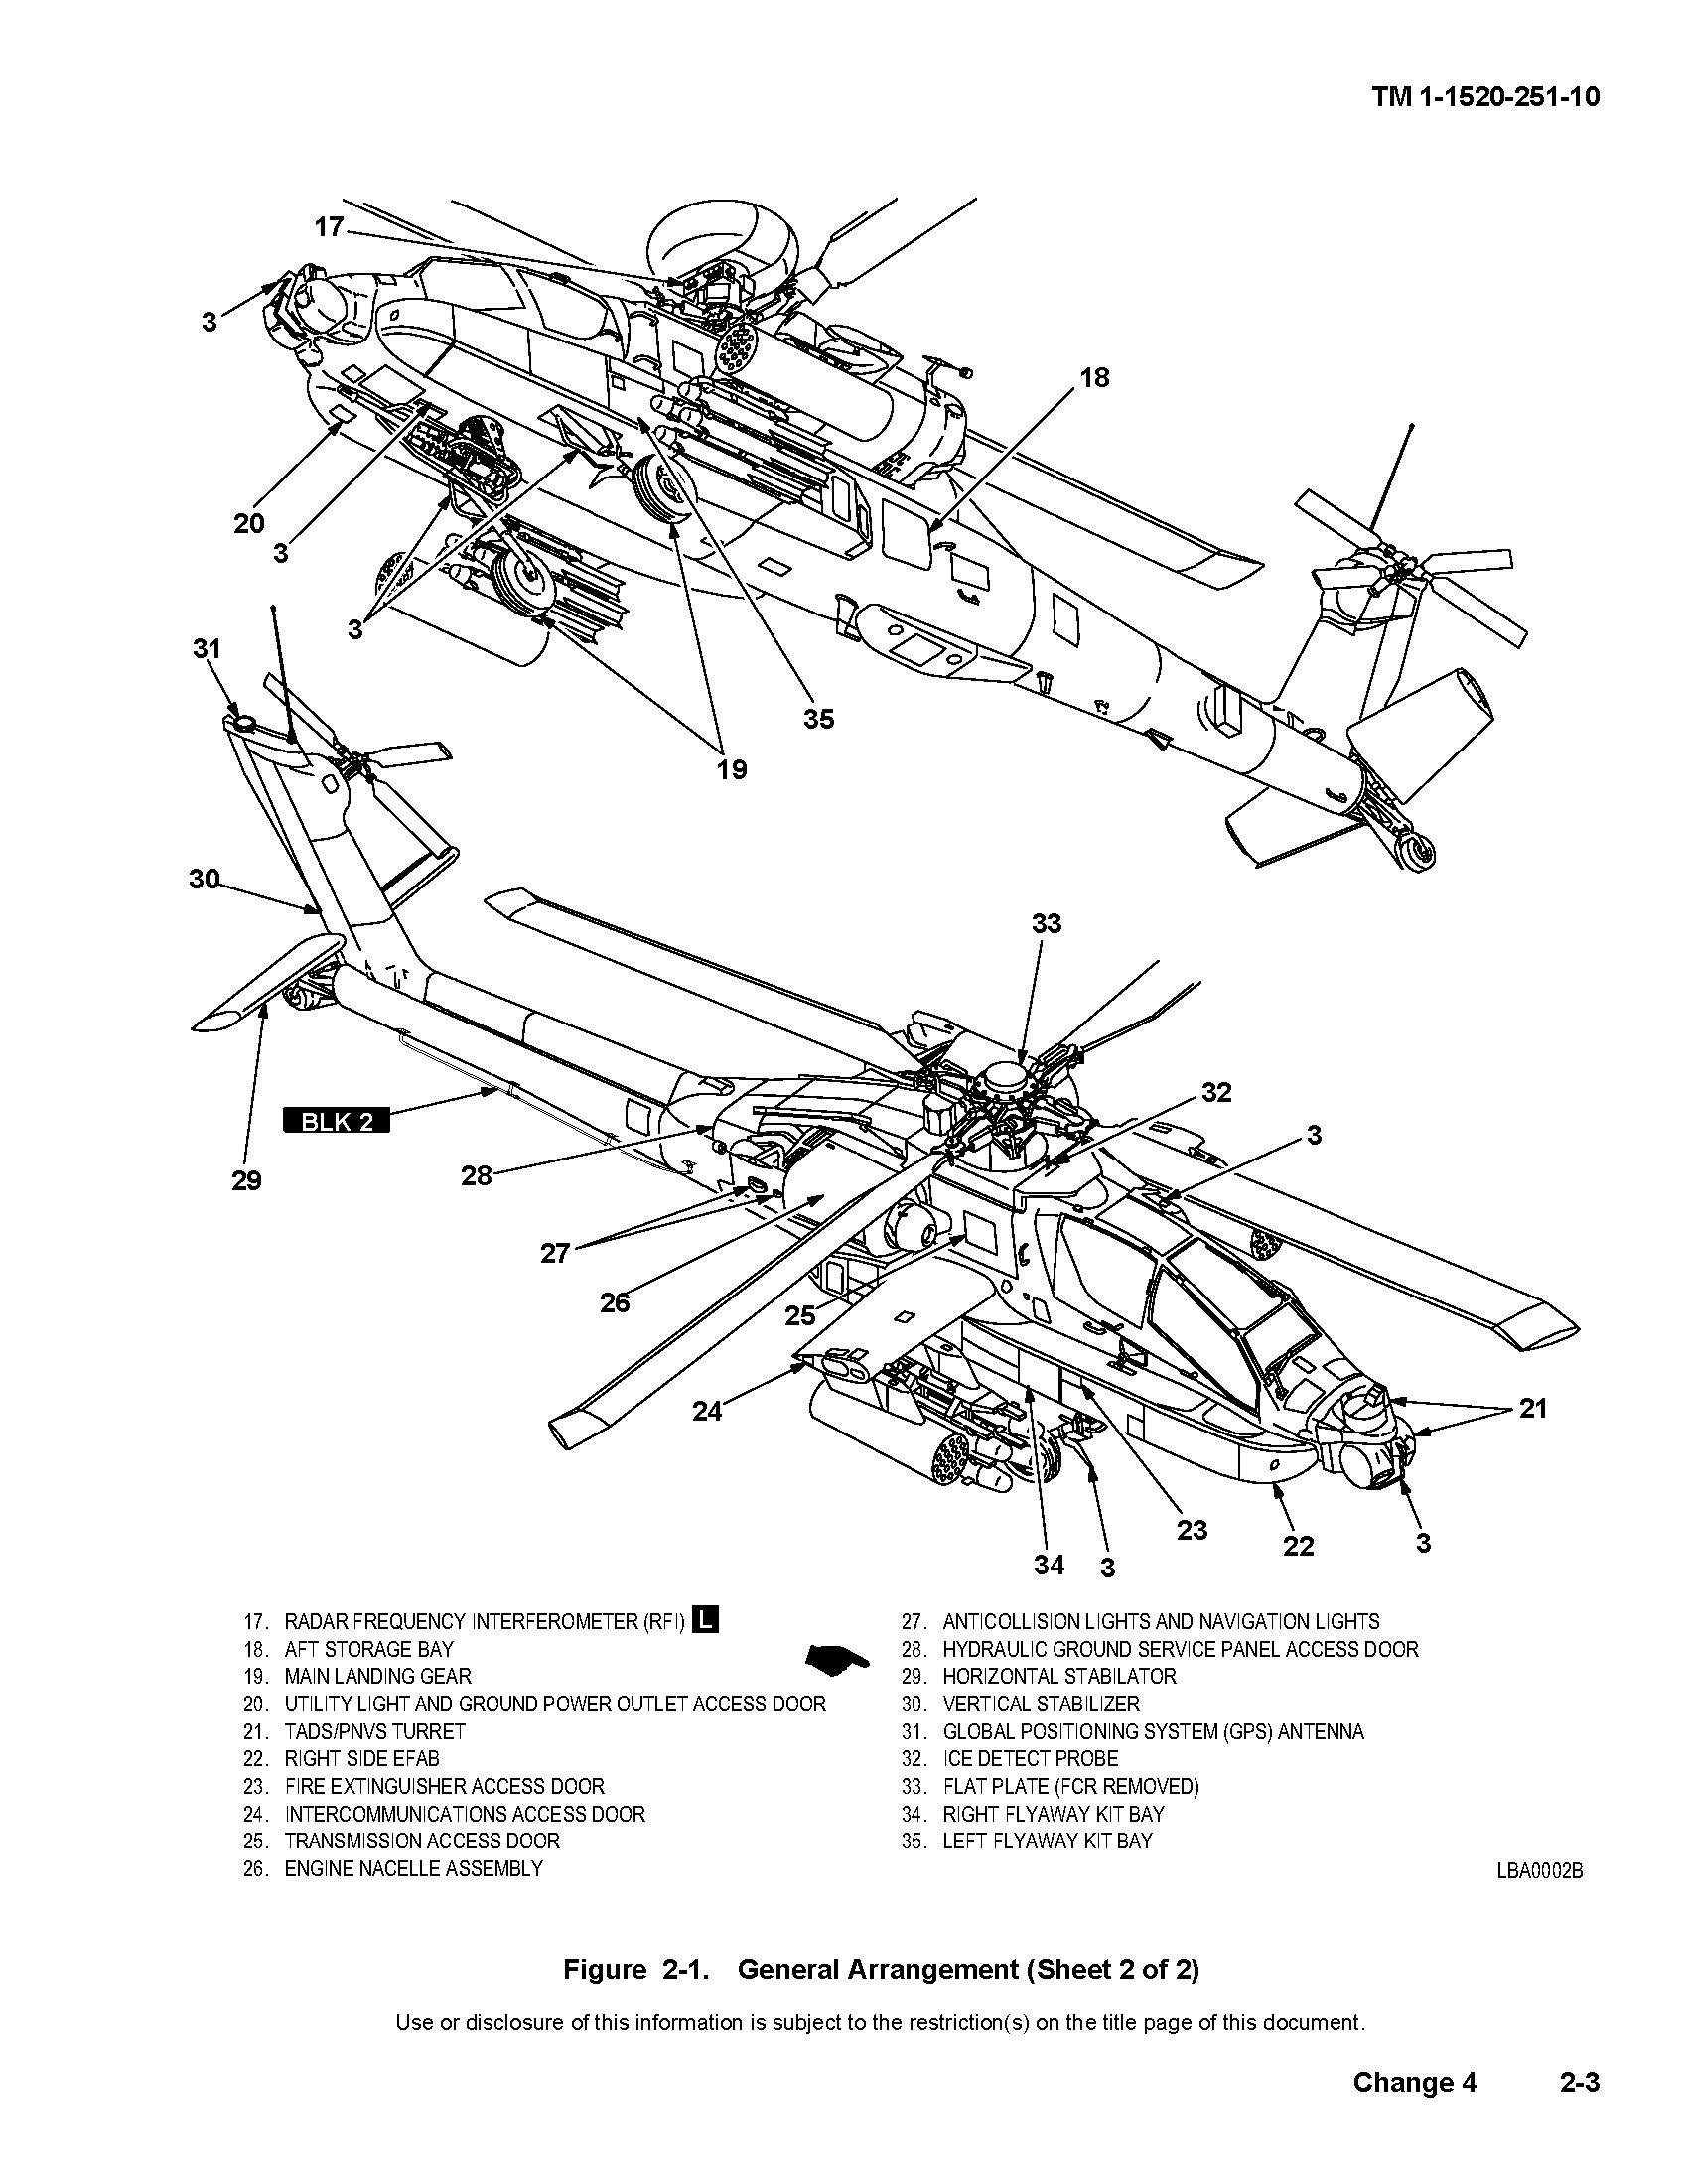 helicopter schematic diagram with Us Army Apache Longbow Ah 64d Attack Helicopter Operators Manual on Jet as well Direct Drive Top Drive Designed To Eliminate Failures Downtime Related To Gearbox Motor 1815 in addition LBD14 500W 24V moreover Us Army Apache Longbow Ah 64d Attack Helicopter Operators Manual together with Mcdonnell Douglas Av 8b Harrier Ii.